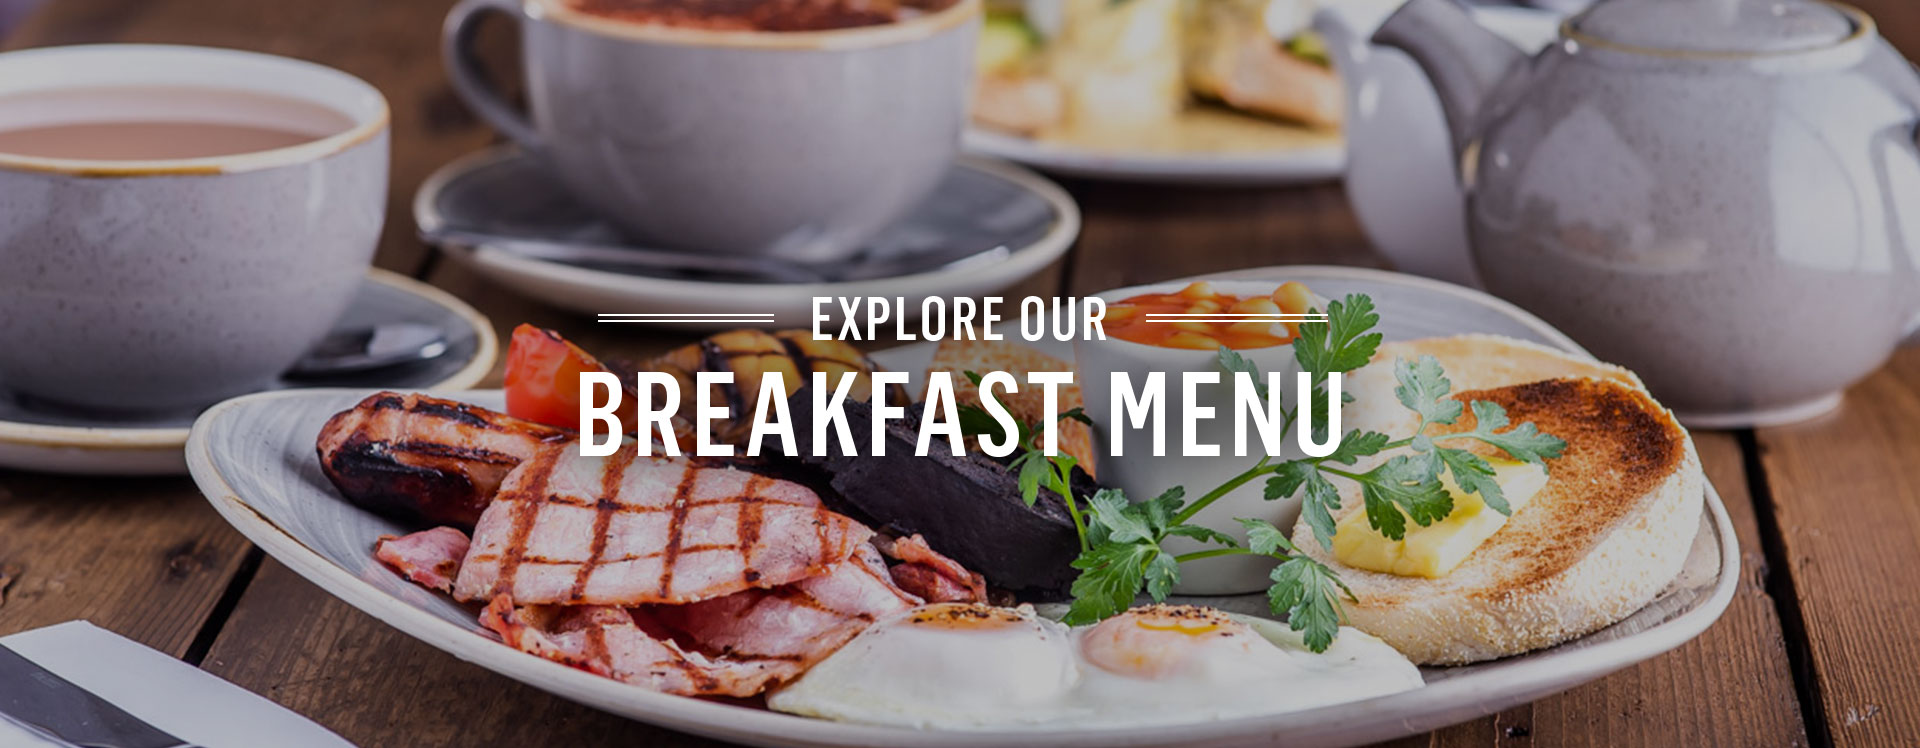 Breakfast at The Feathers - Book a table